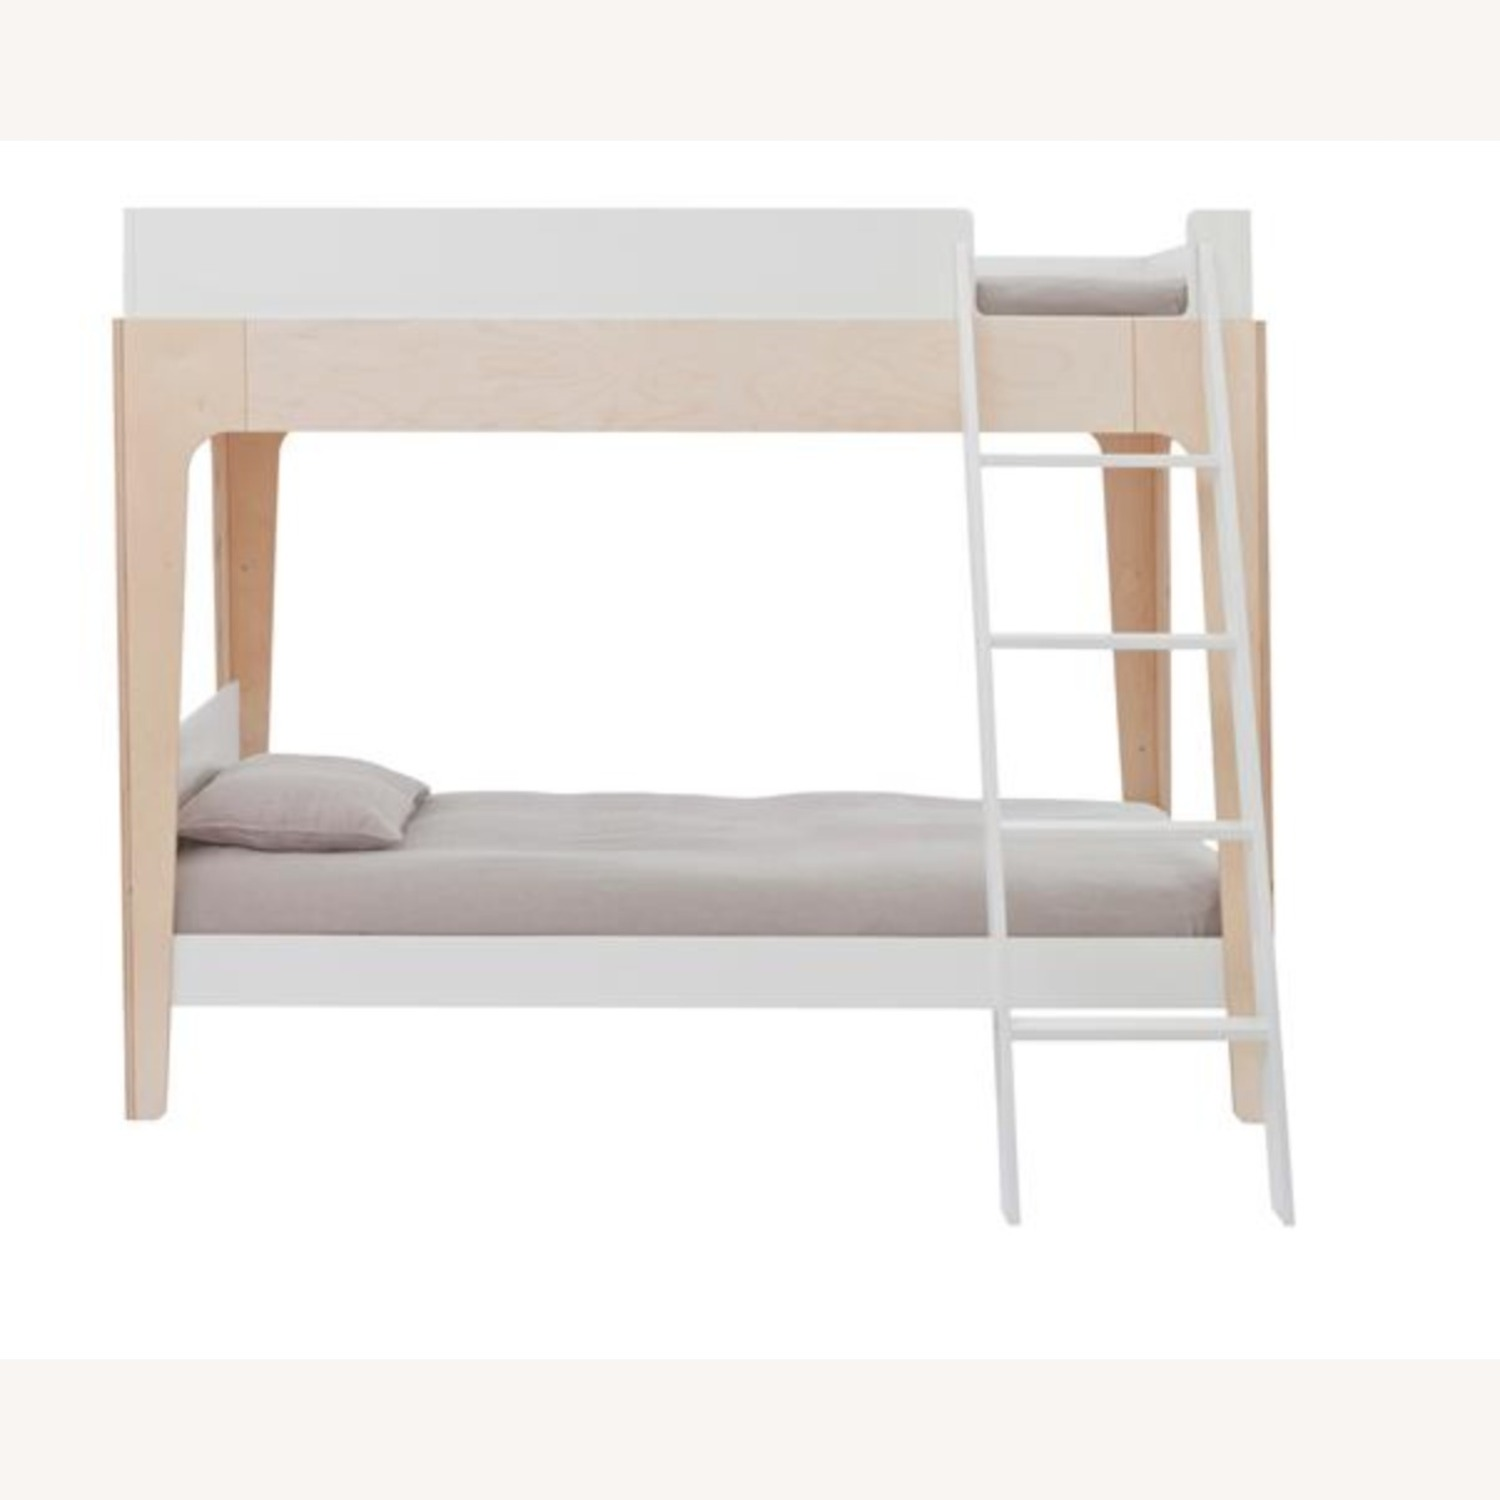 Oeuf Perch Modern Classic Birch Bunk Bed - image-4